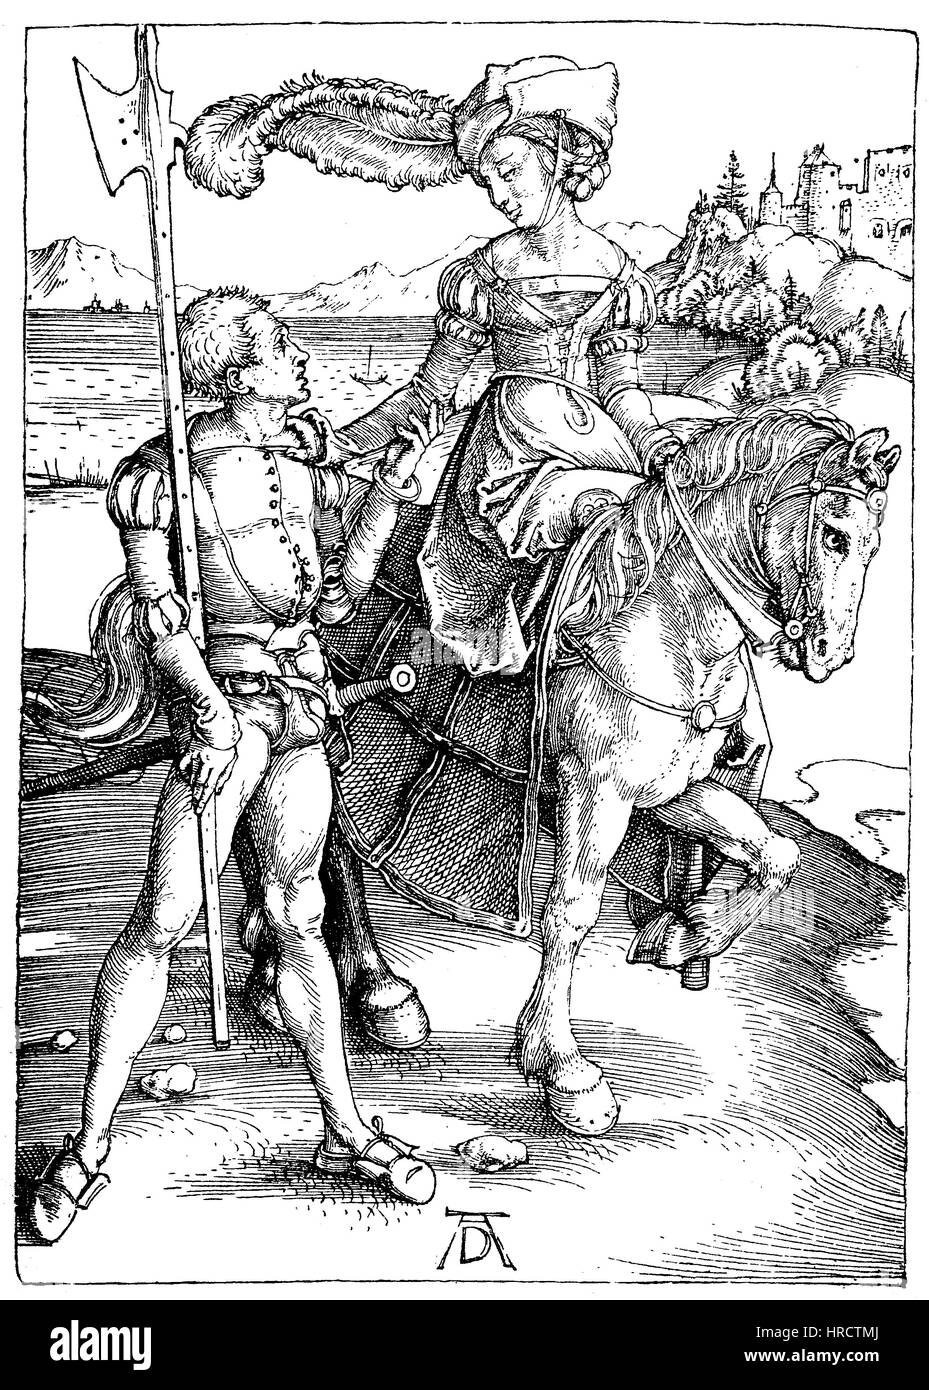 A noble lady on a horse, accompanied by an armed servant, facsimile of the copper engraving by Albrecht Duerer, - Stock Image